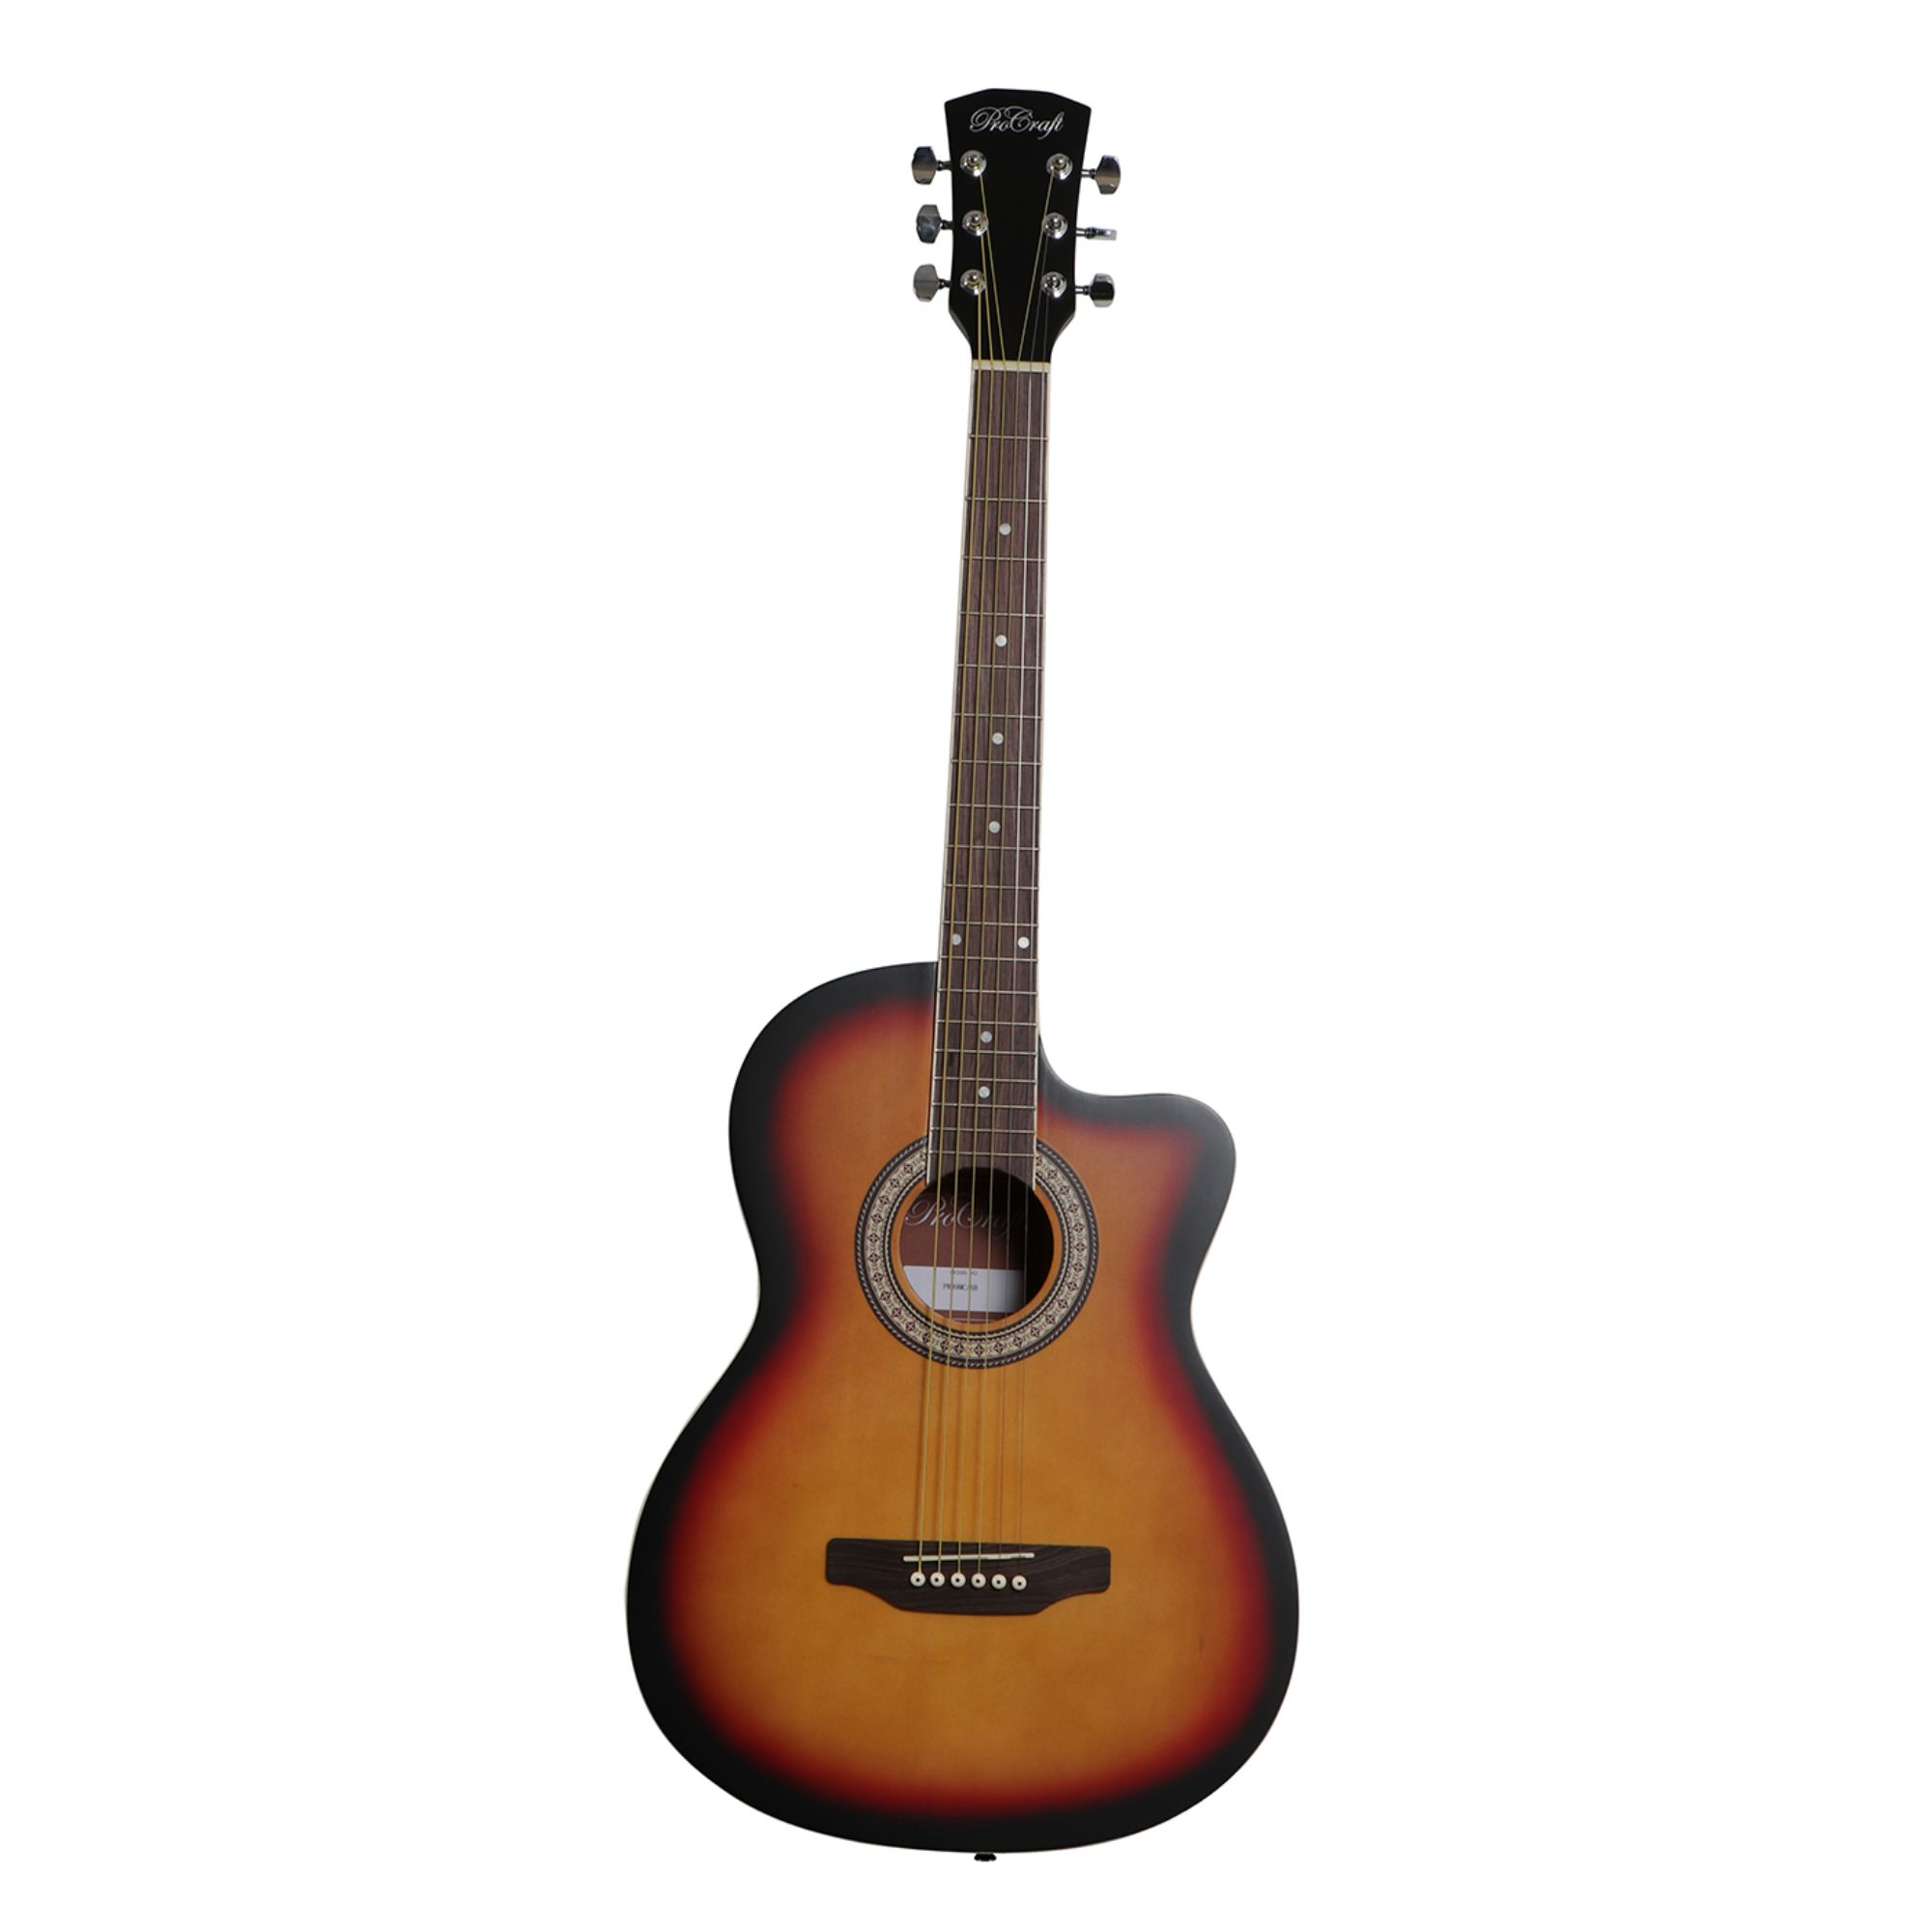 "39"" Procraft Cutaway Acoustic Guitar"